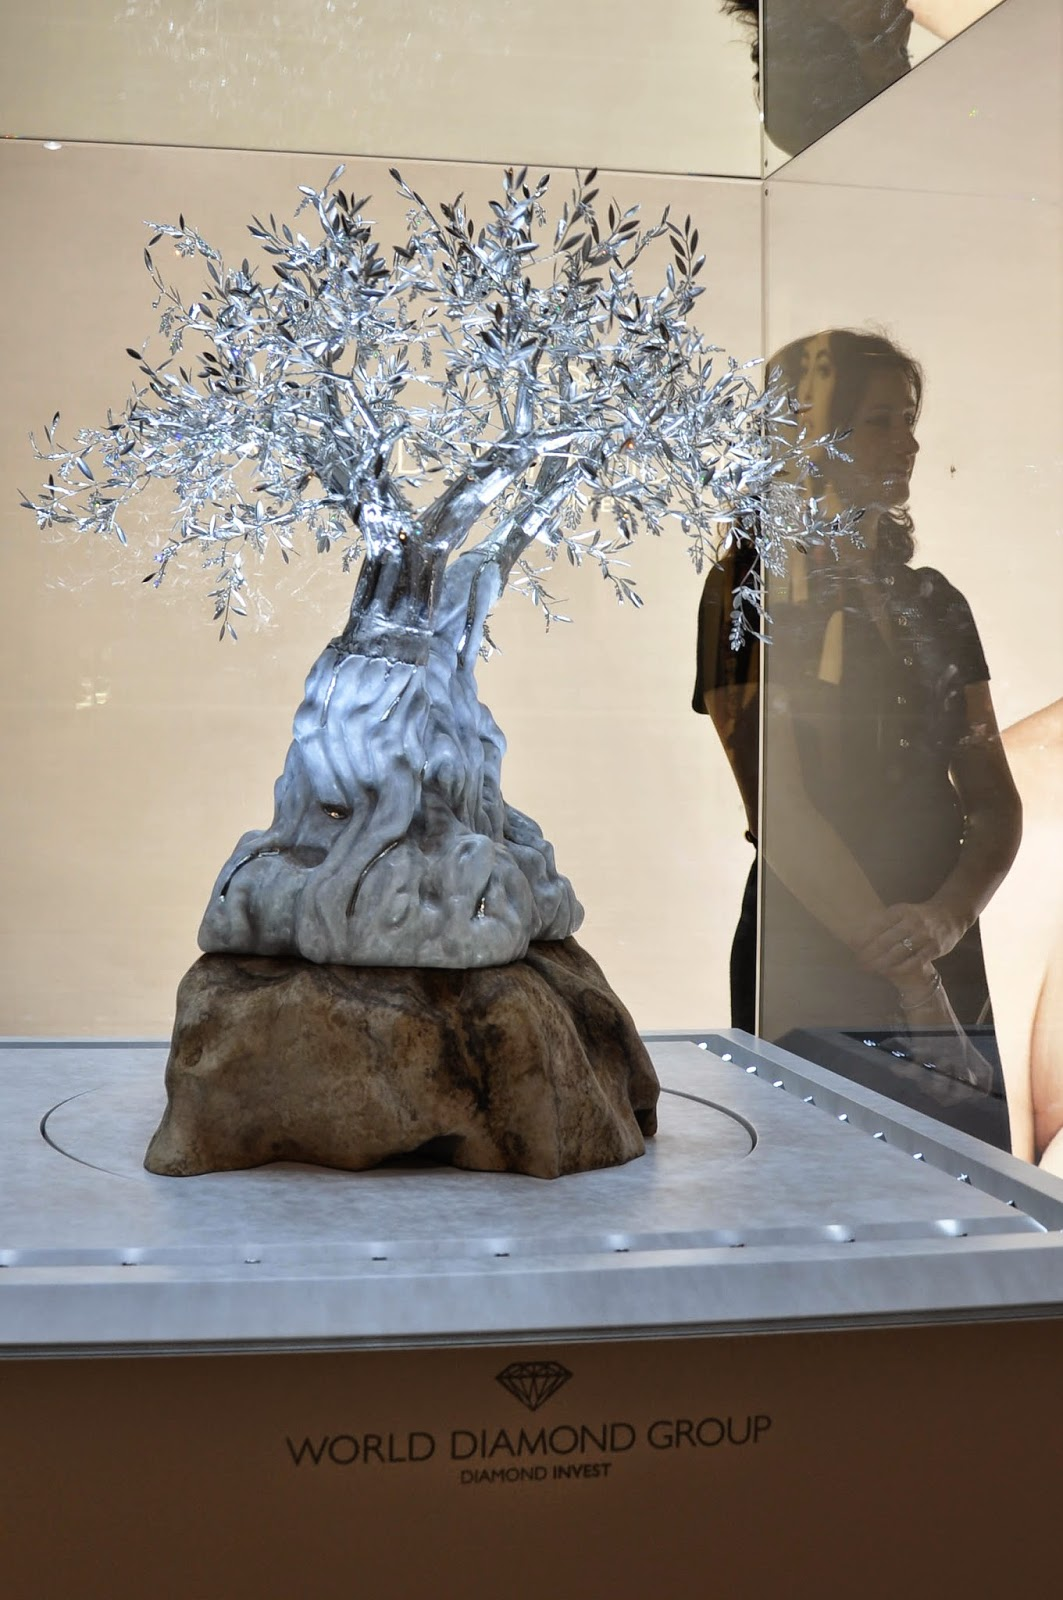 The White Olive Tree by Agatino Capella promoted by the The World Diamond Group